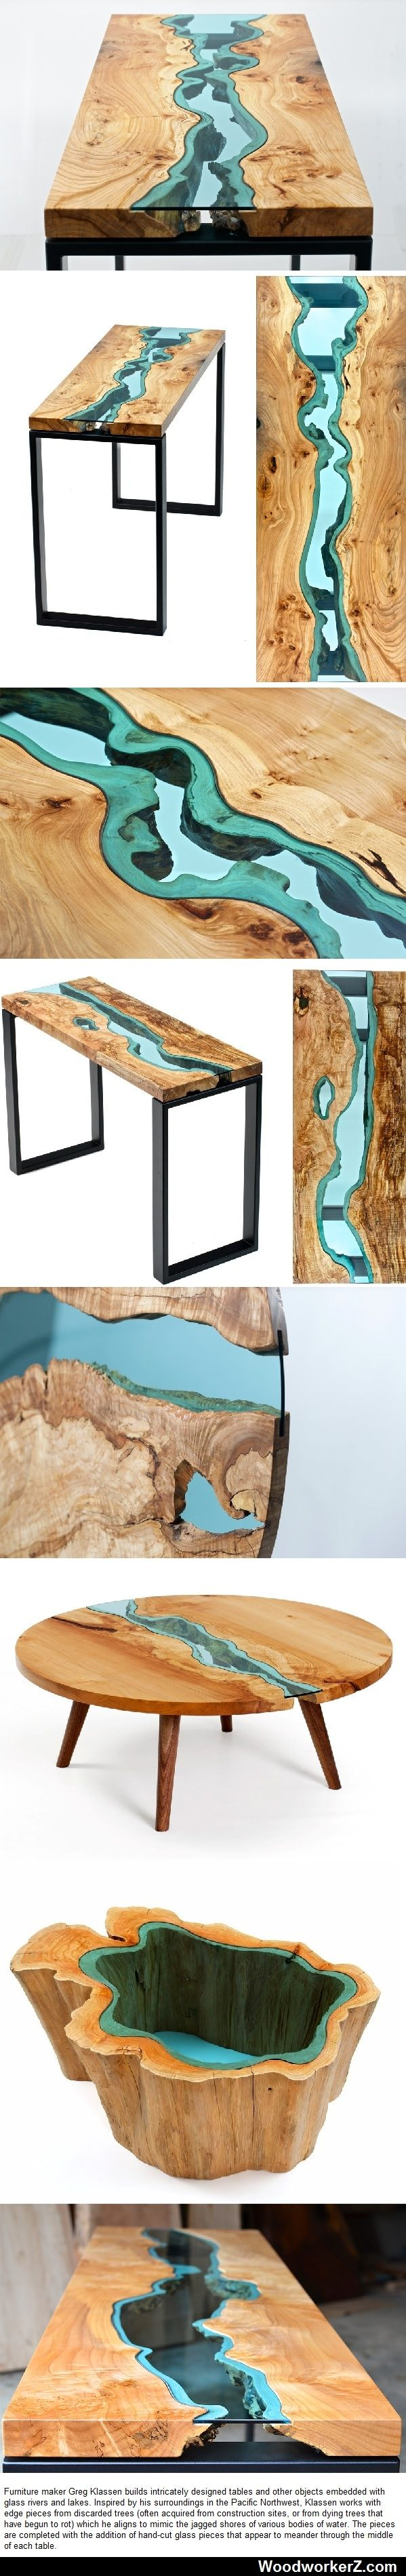 Best 25+ Resin furniture ideas on Pinterest | DIY resin furniture ...